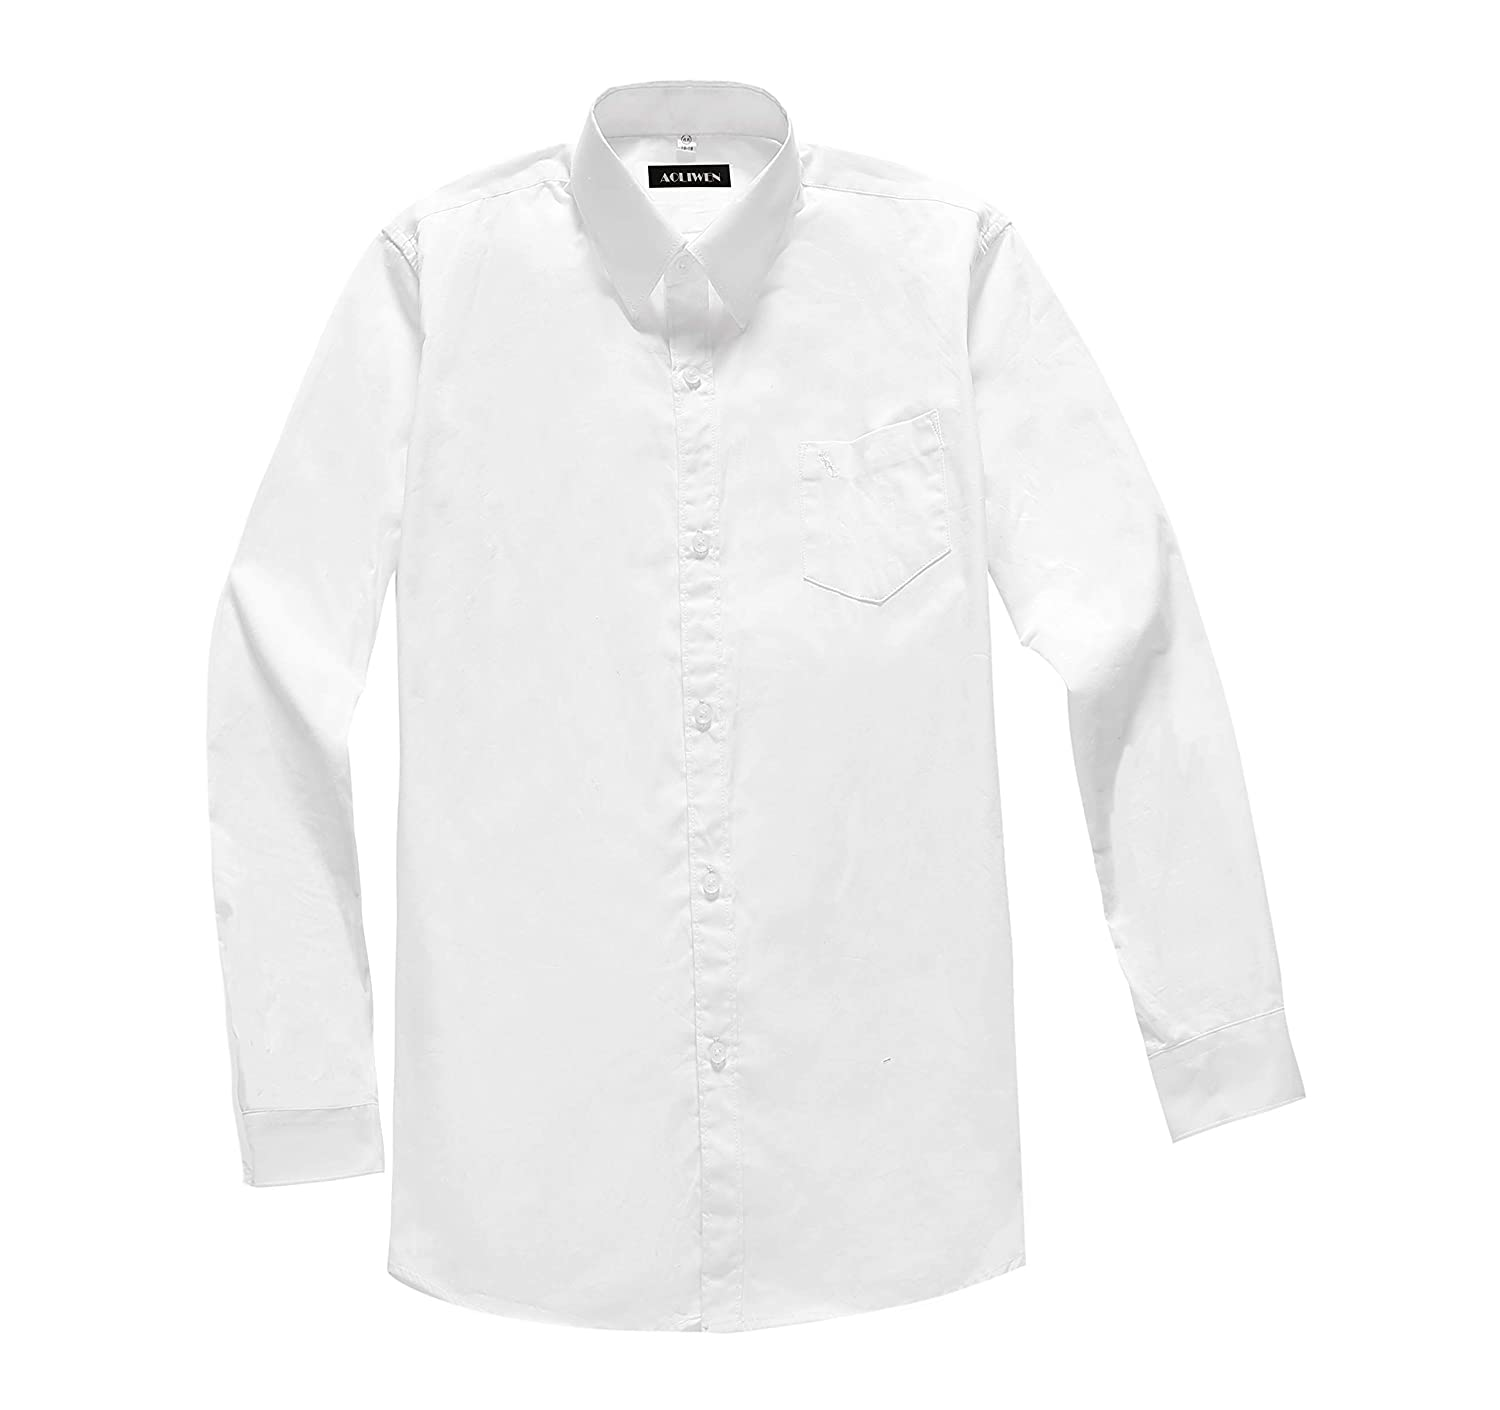 ADONIS Boys 100/% Cotton Non Iron White Pinpoint Long Sleeve Dress Shirt BCBT-6